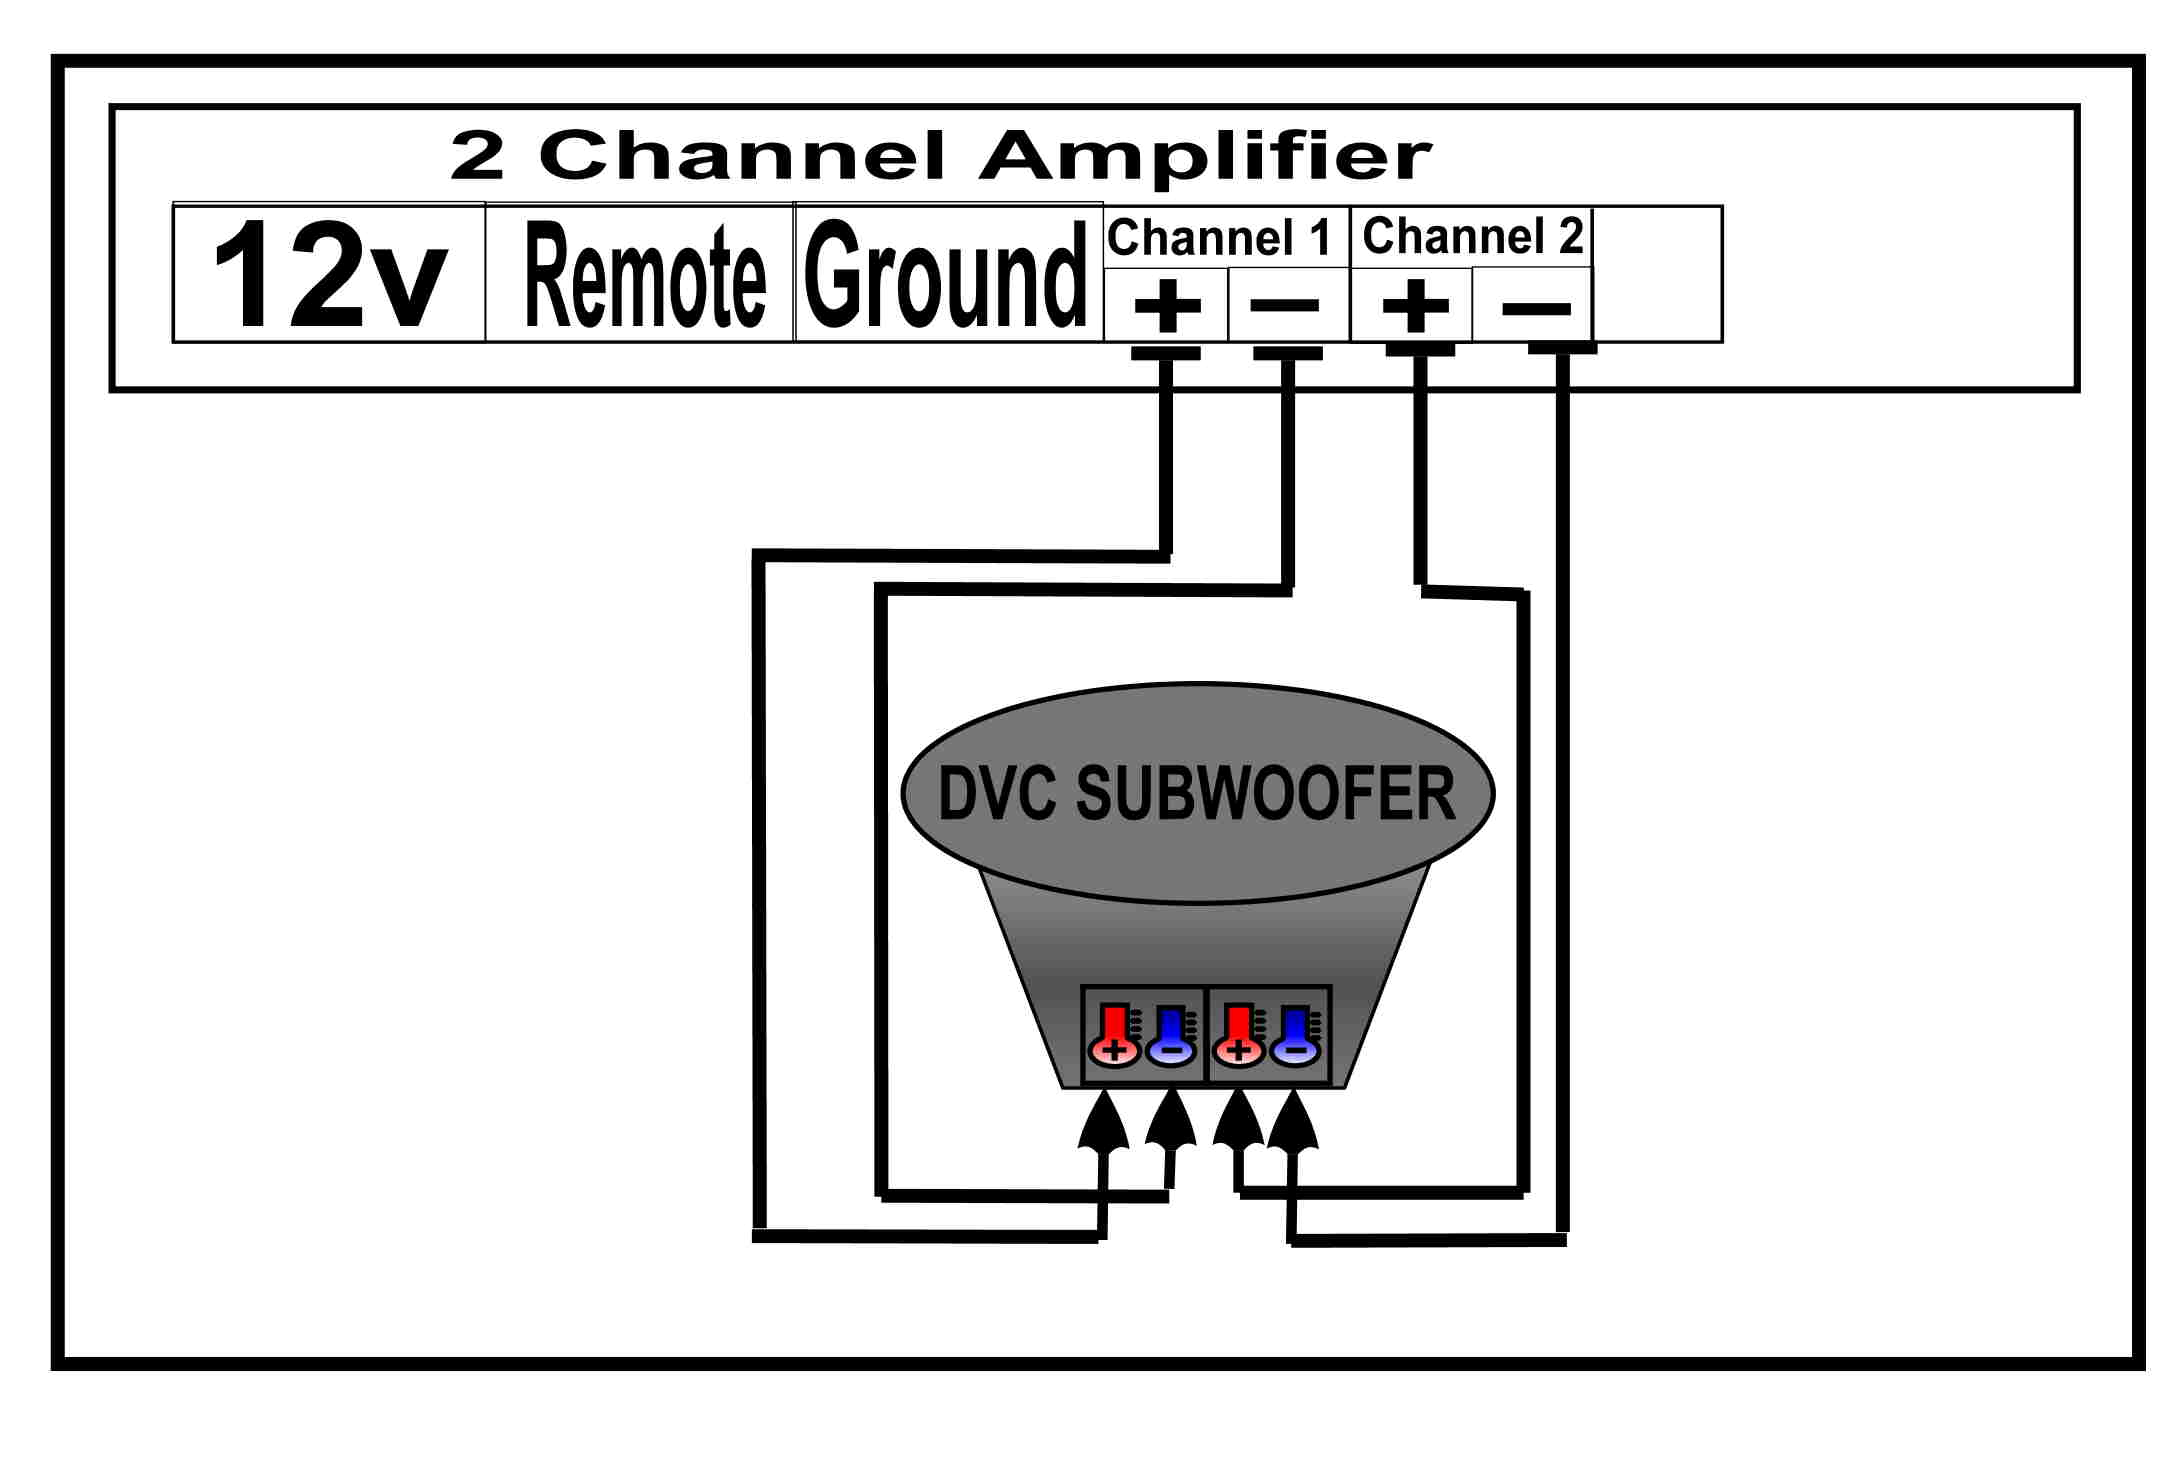 DVC to 2 Channel Amplifier help with wiring my audiobahn aw 1200 q and spl 460 phantom amplifier audiobahn aw1200q wiring diagram at love-stories.co